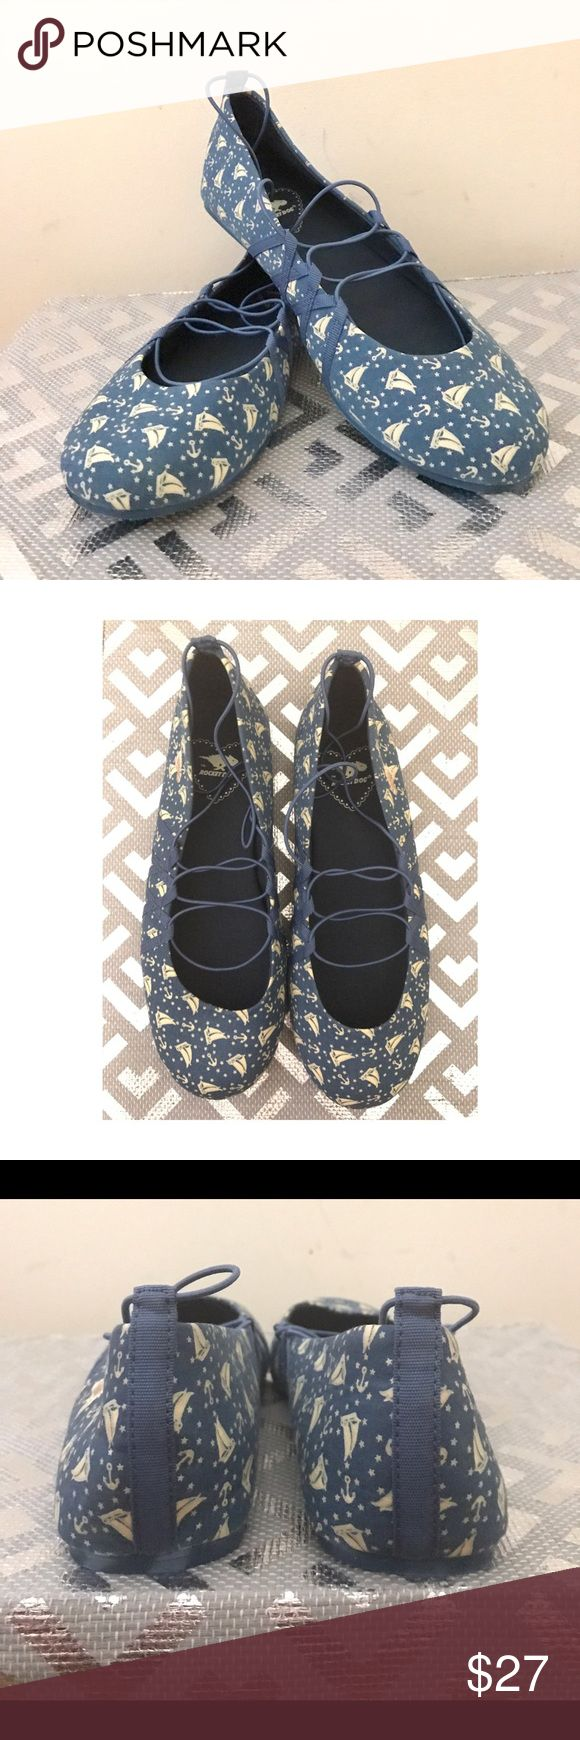 """NWOB ROCKET DOG Ballet Flats """"Nautical"""" Size 7 Darling, brand new, never worn ballet flats by ROCKET DOG. Blue with cream coloured sailboats. Size 7. Rocket Dog Shoes Flats & Loafers"""